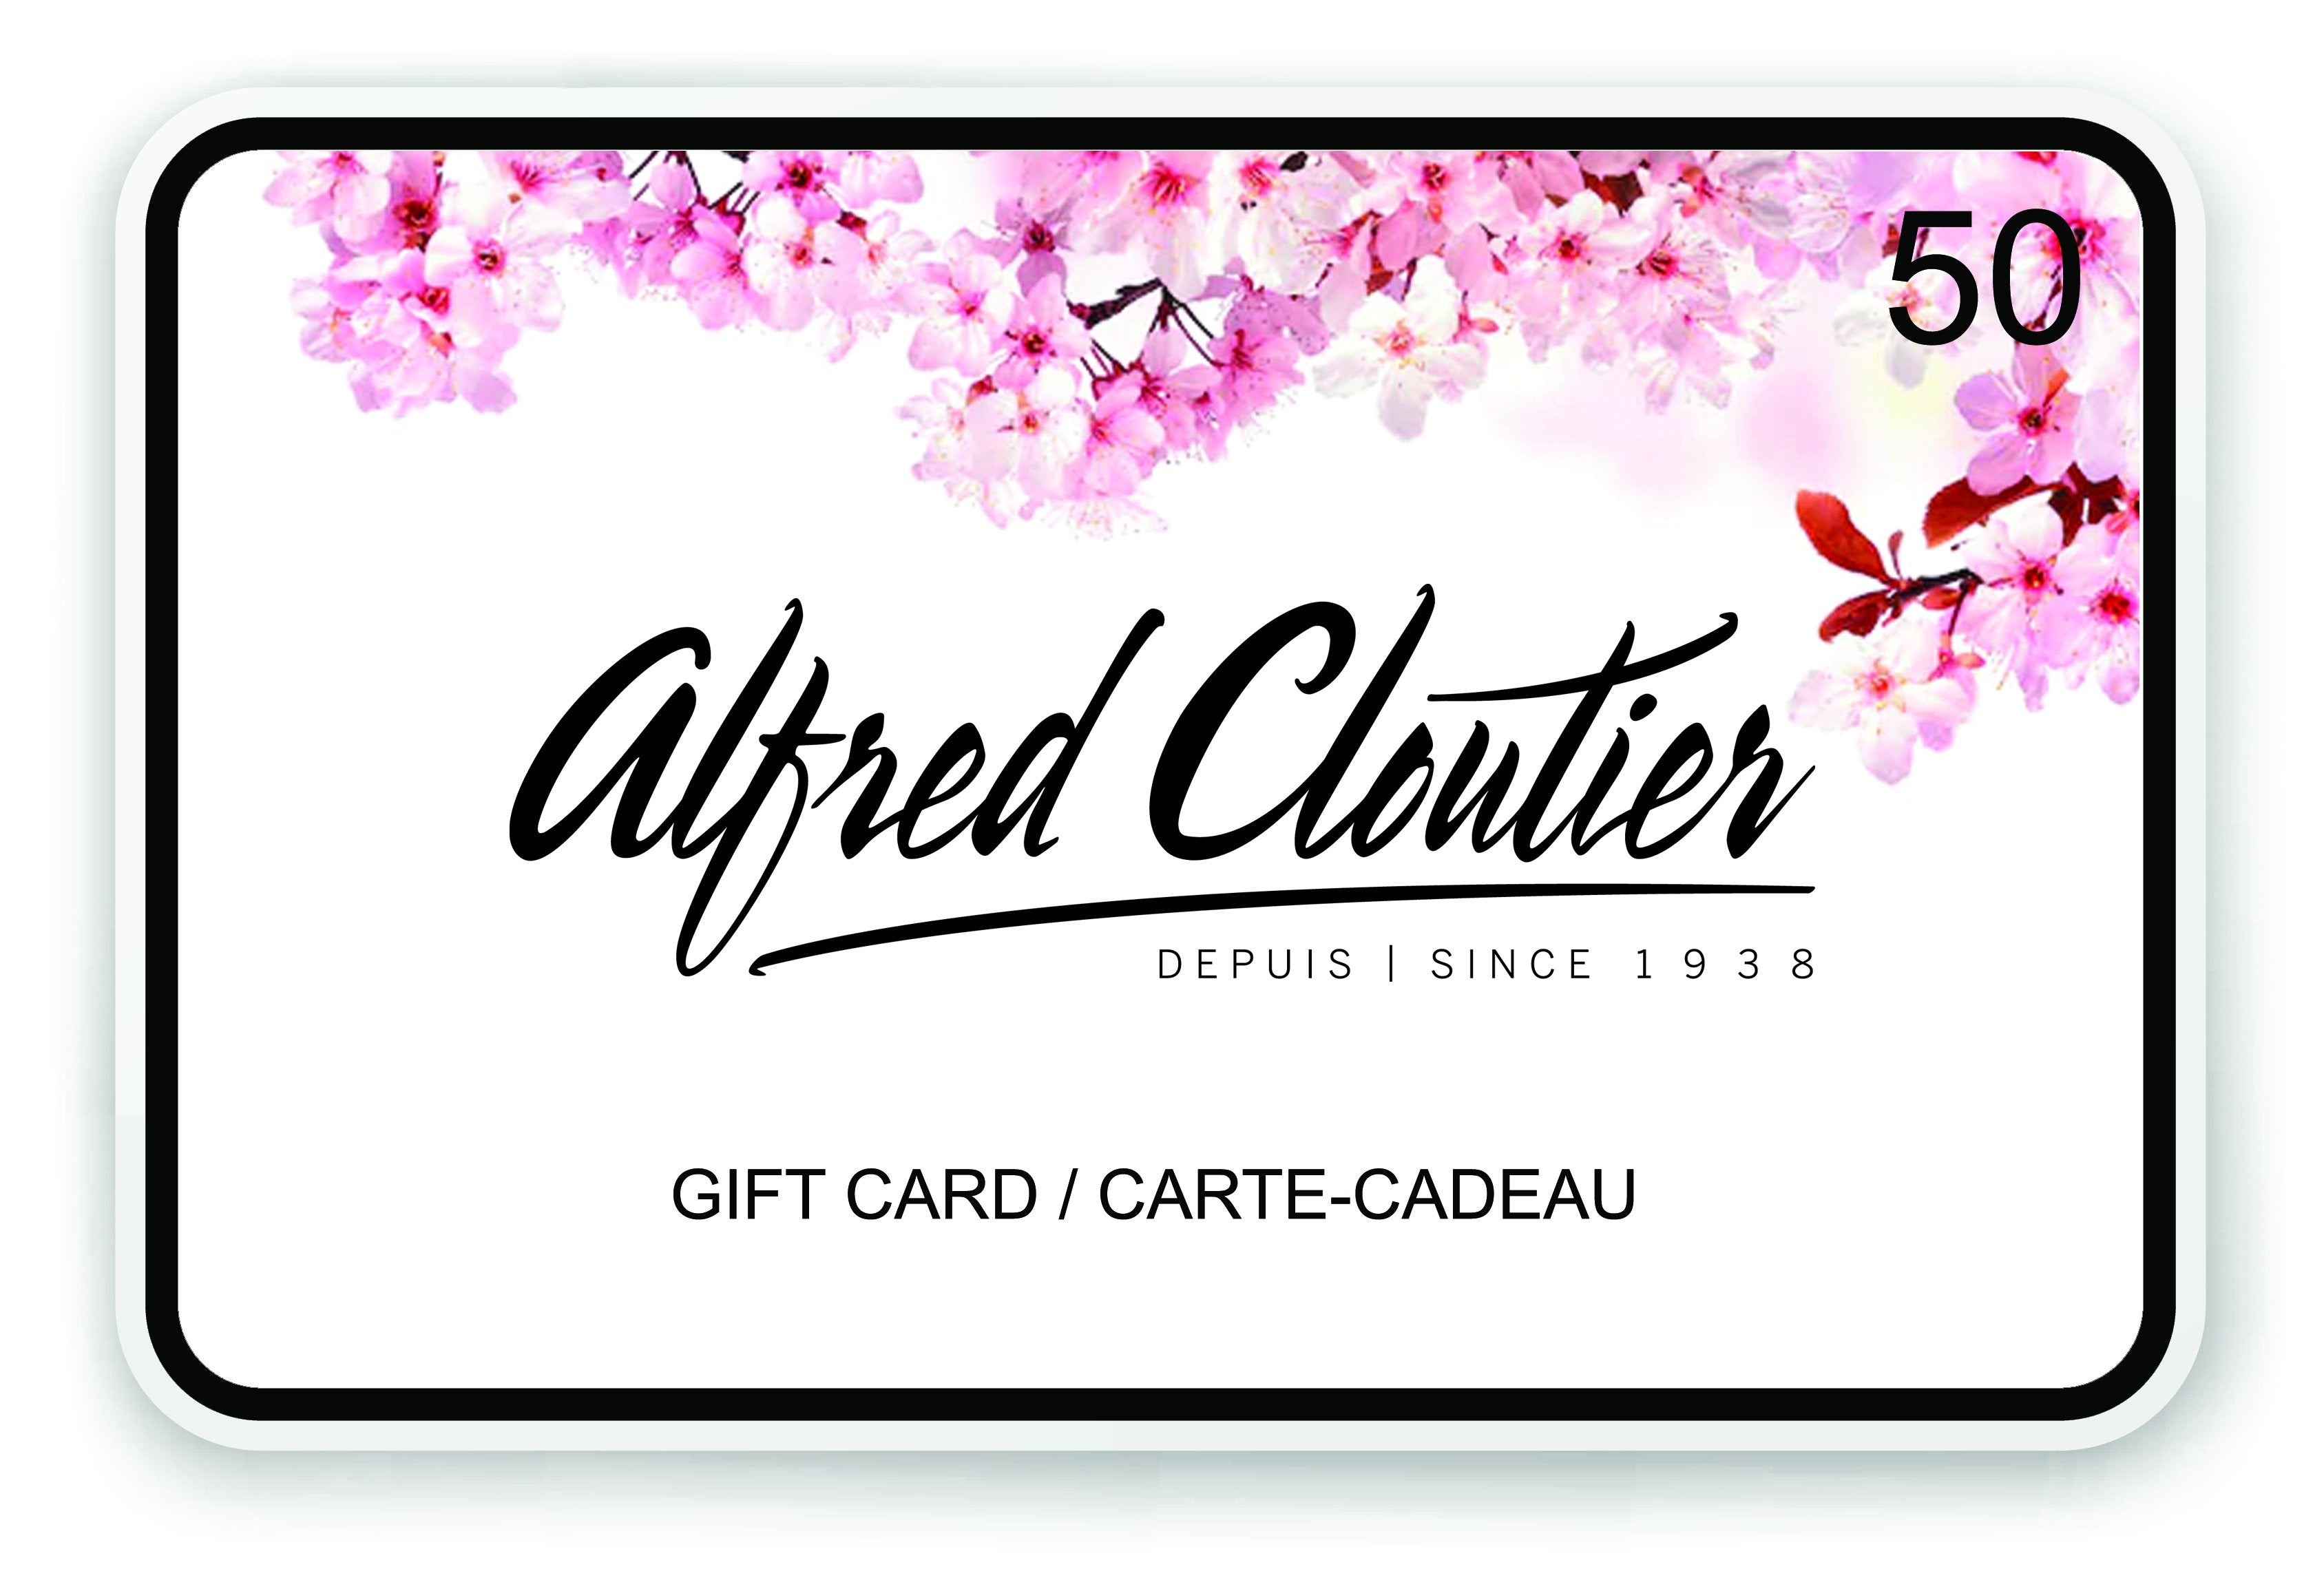 Gift Card - Alfred Cloutier Ltd. - Canada